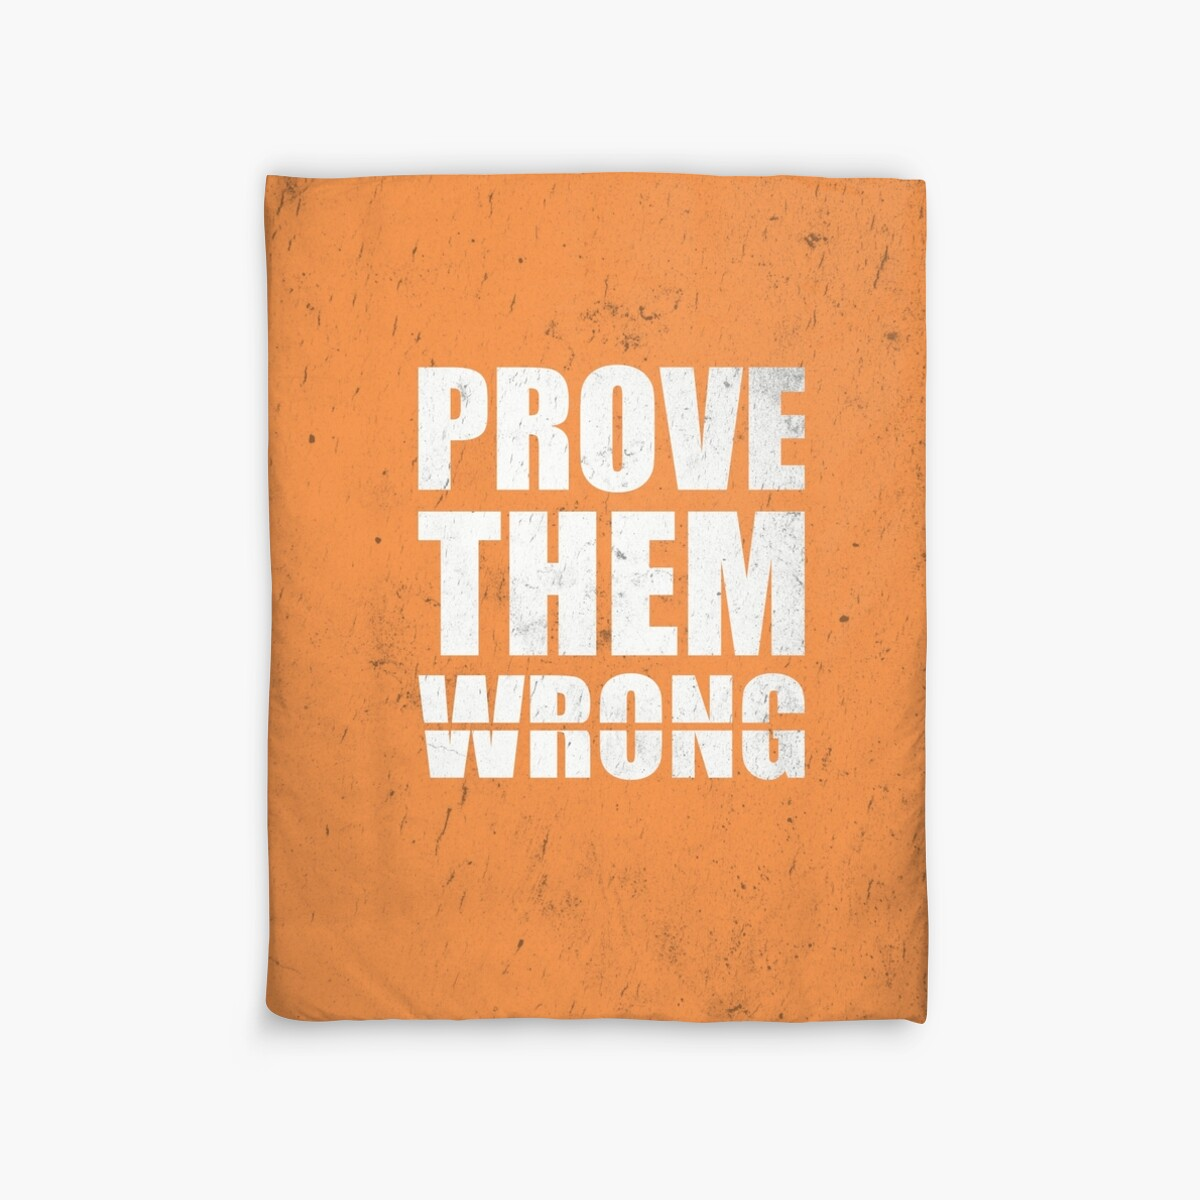 "Prove Them Wrong Quotes Prove Them Wrong  Gym Inspirational Quotes"" Duvet Covers."